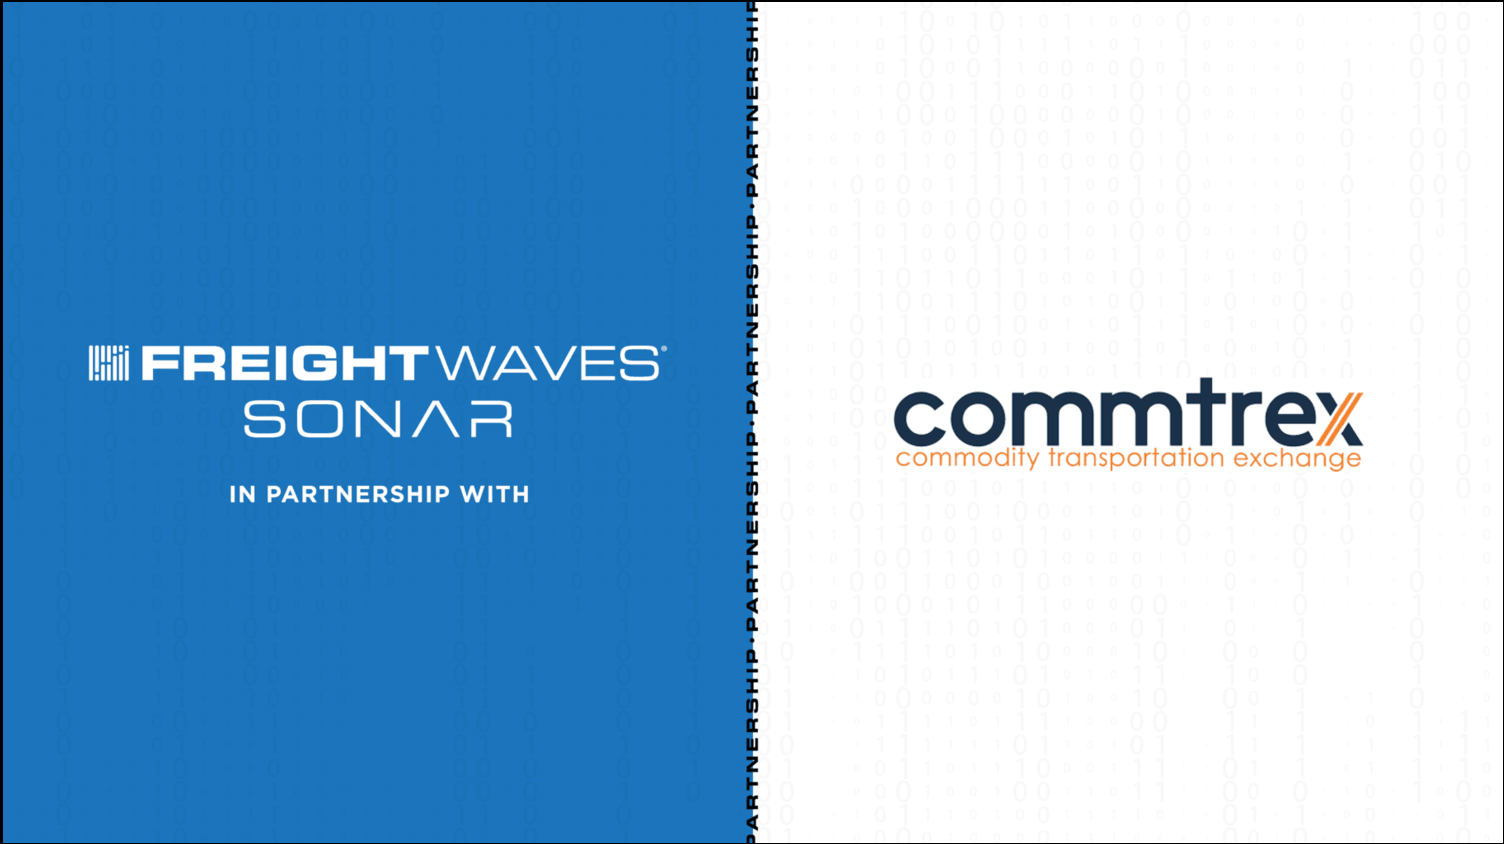 SONAR Partnership Commtrex (1)